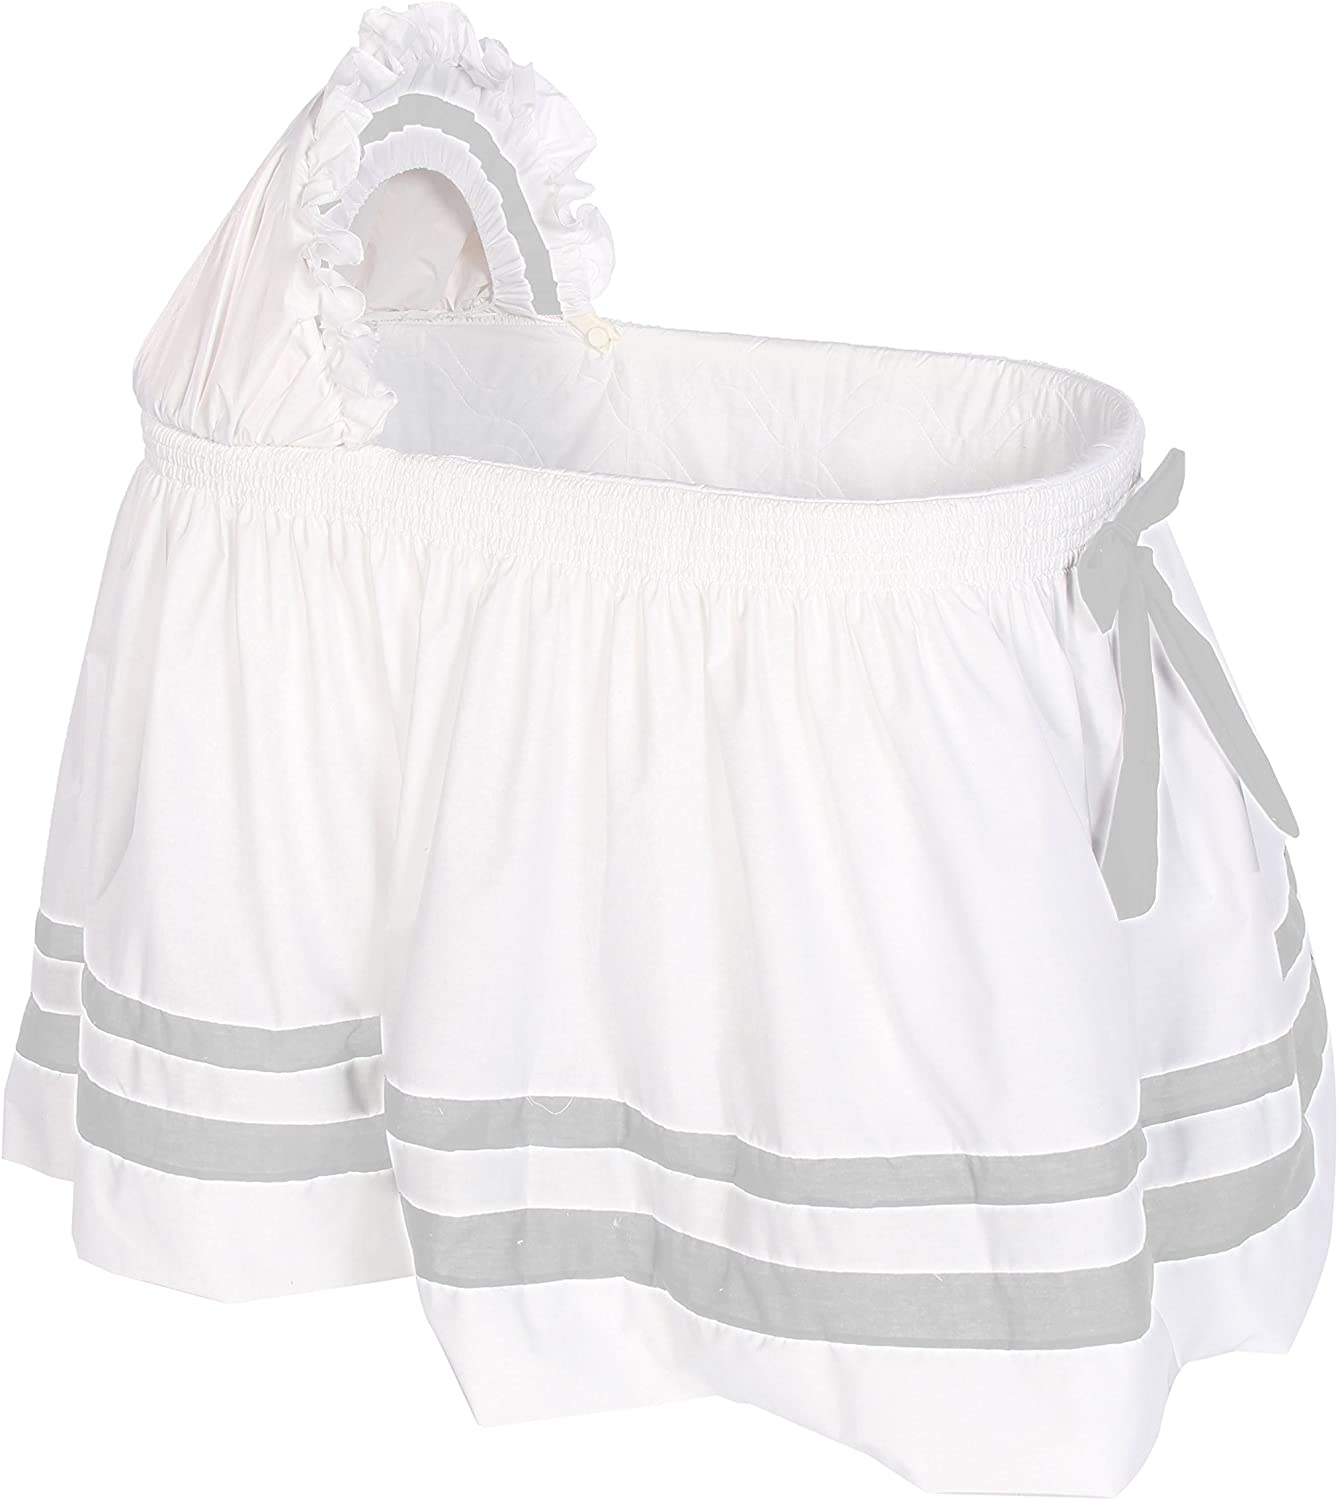 Bassinet skirt patterns, dalila arab fuck anal